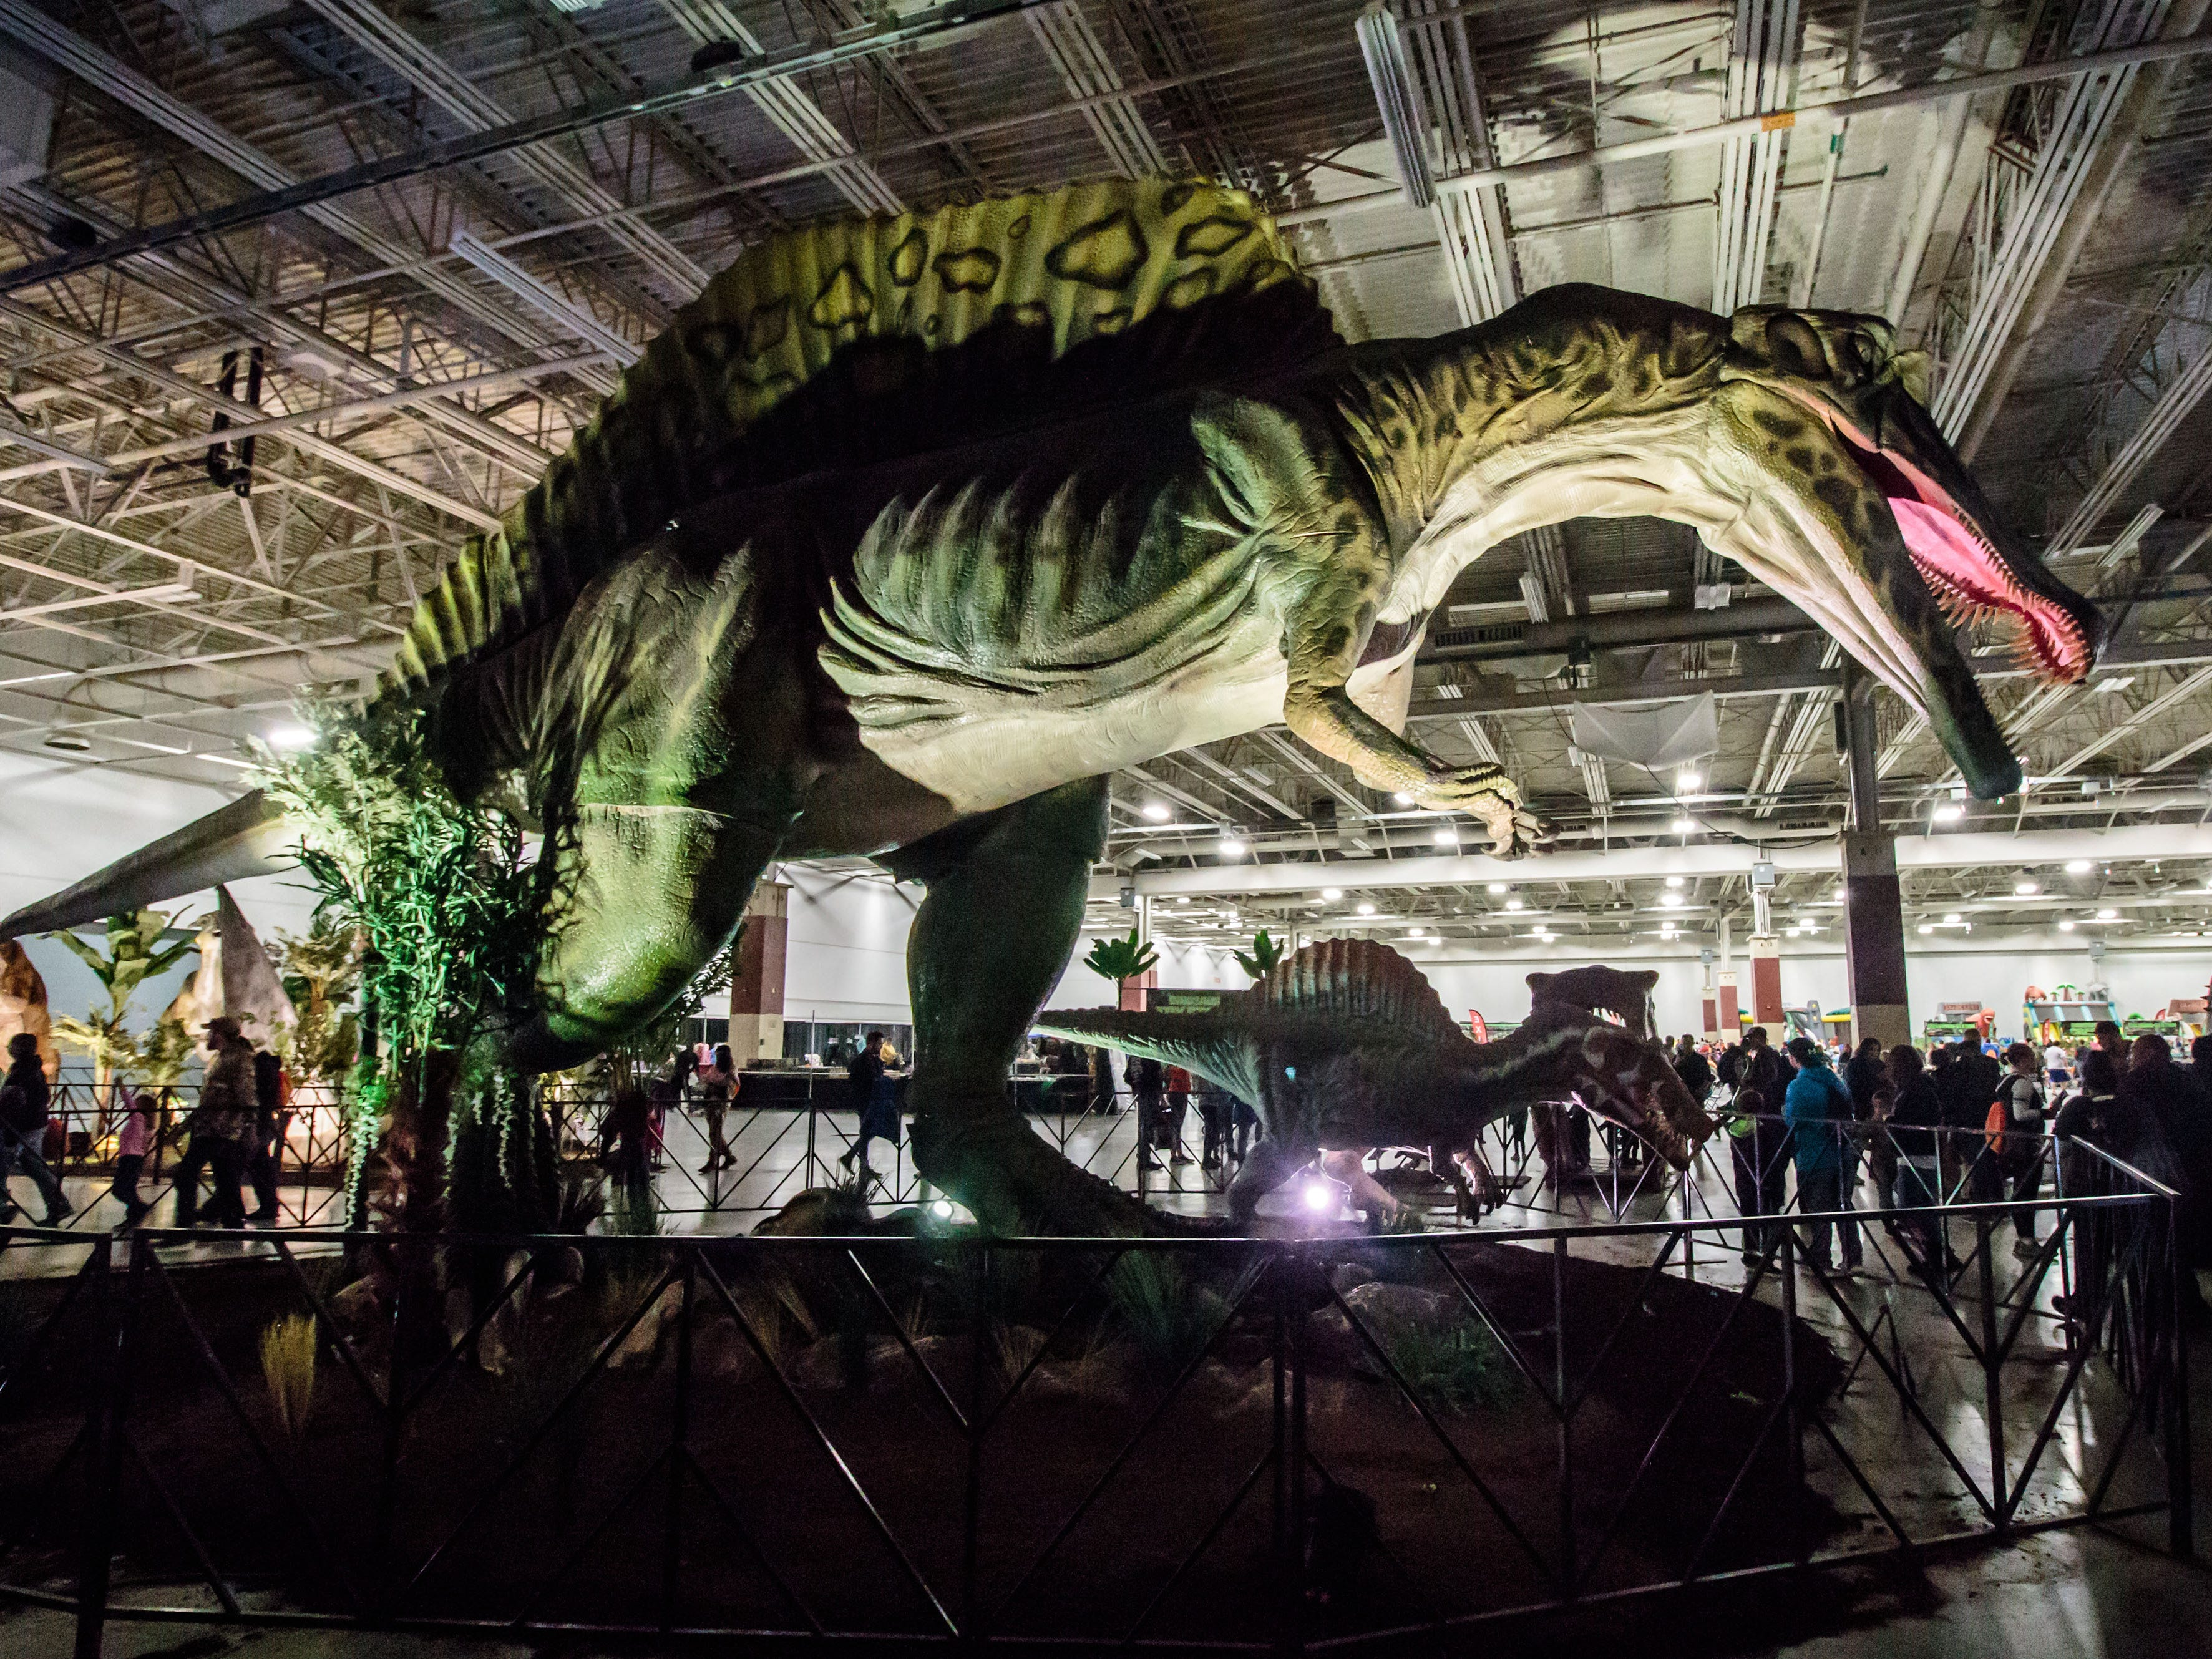 Dinosaurs of all shapes and sizes were on display during Jurassic Quest at Wisconsin State Fair Park in West Allis on Sunday, Oct. 21, 2018. The three-day event featured more than 80 life-sized animatronic dinosaurs, fossils, games, crafts, bounce houses and more.